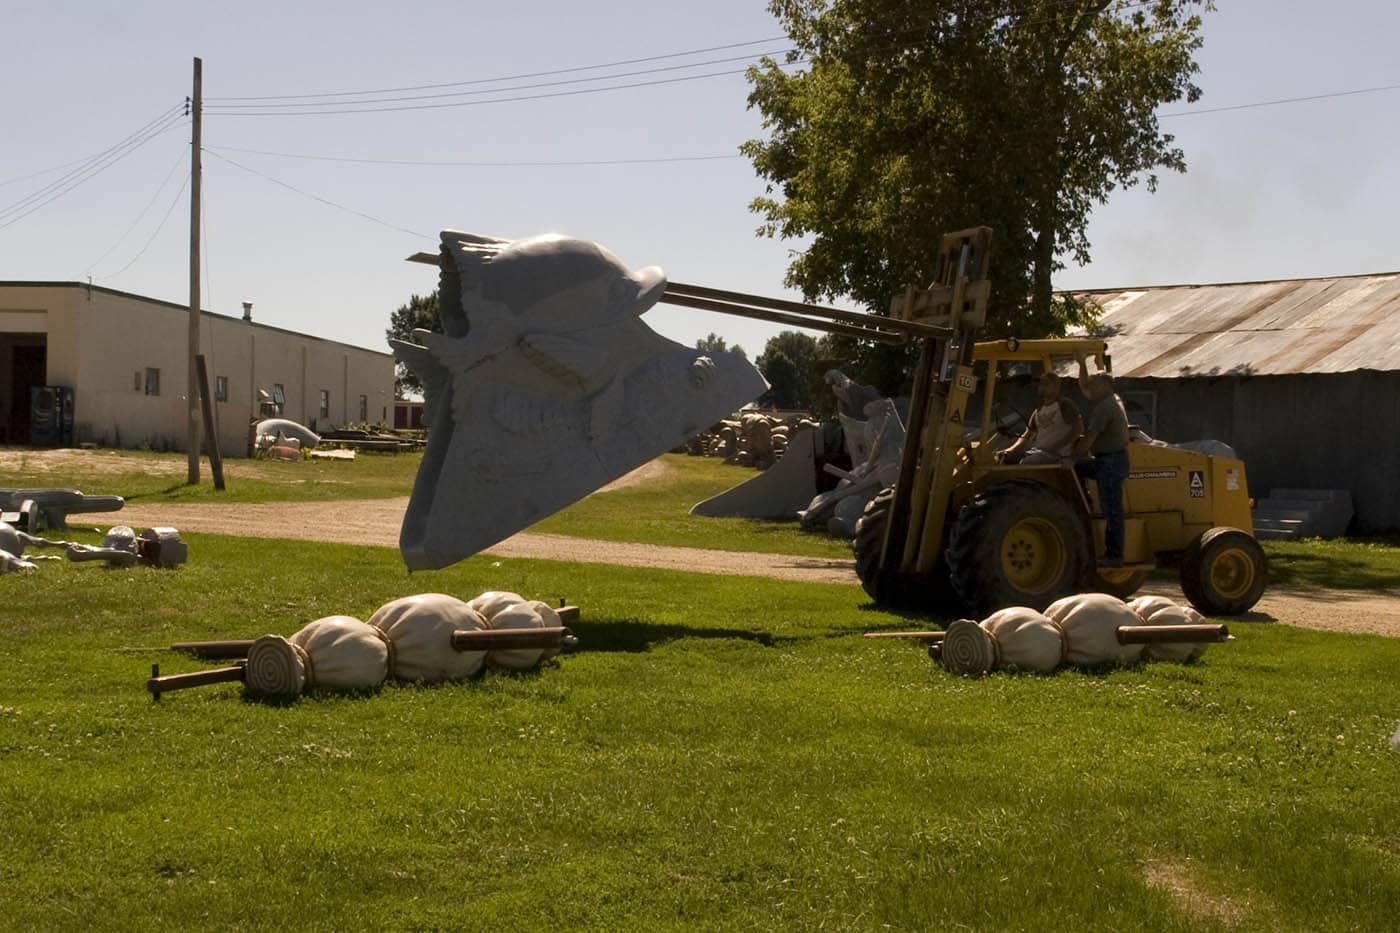 Moving Fiberglass Works - F.A.S.T. - Fiberglass Animals, Shapes & Trademarks in Sparta, Wisconsin